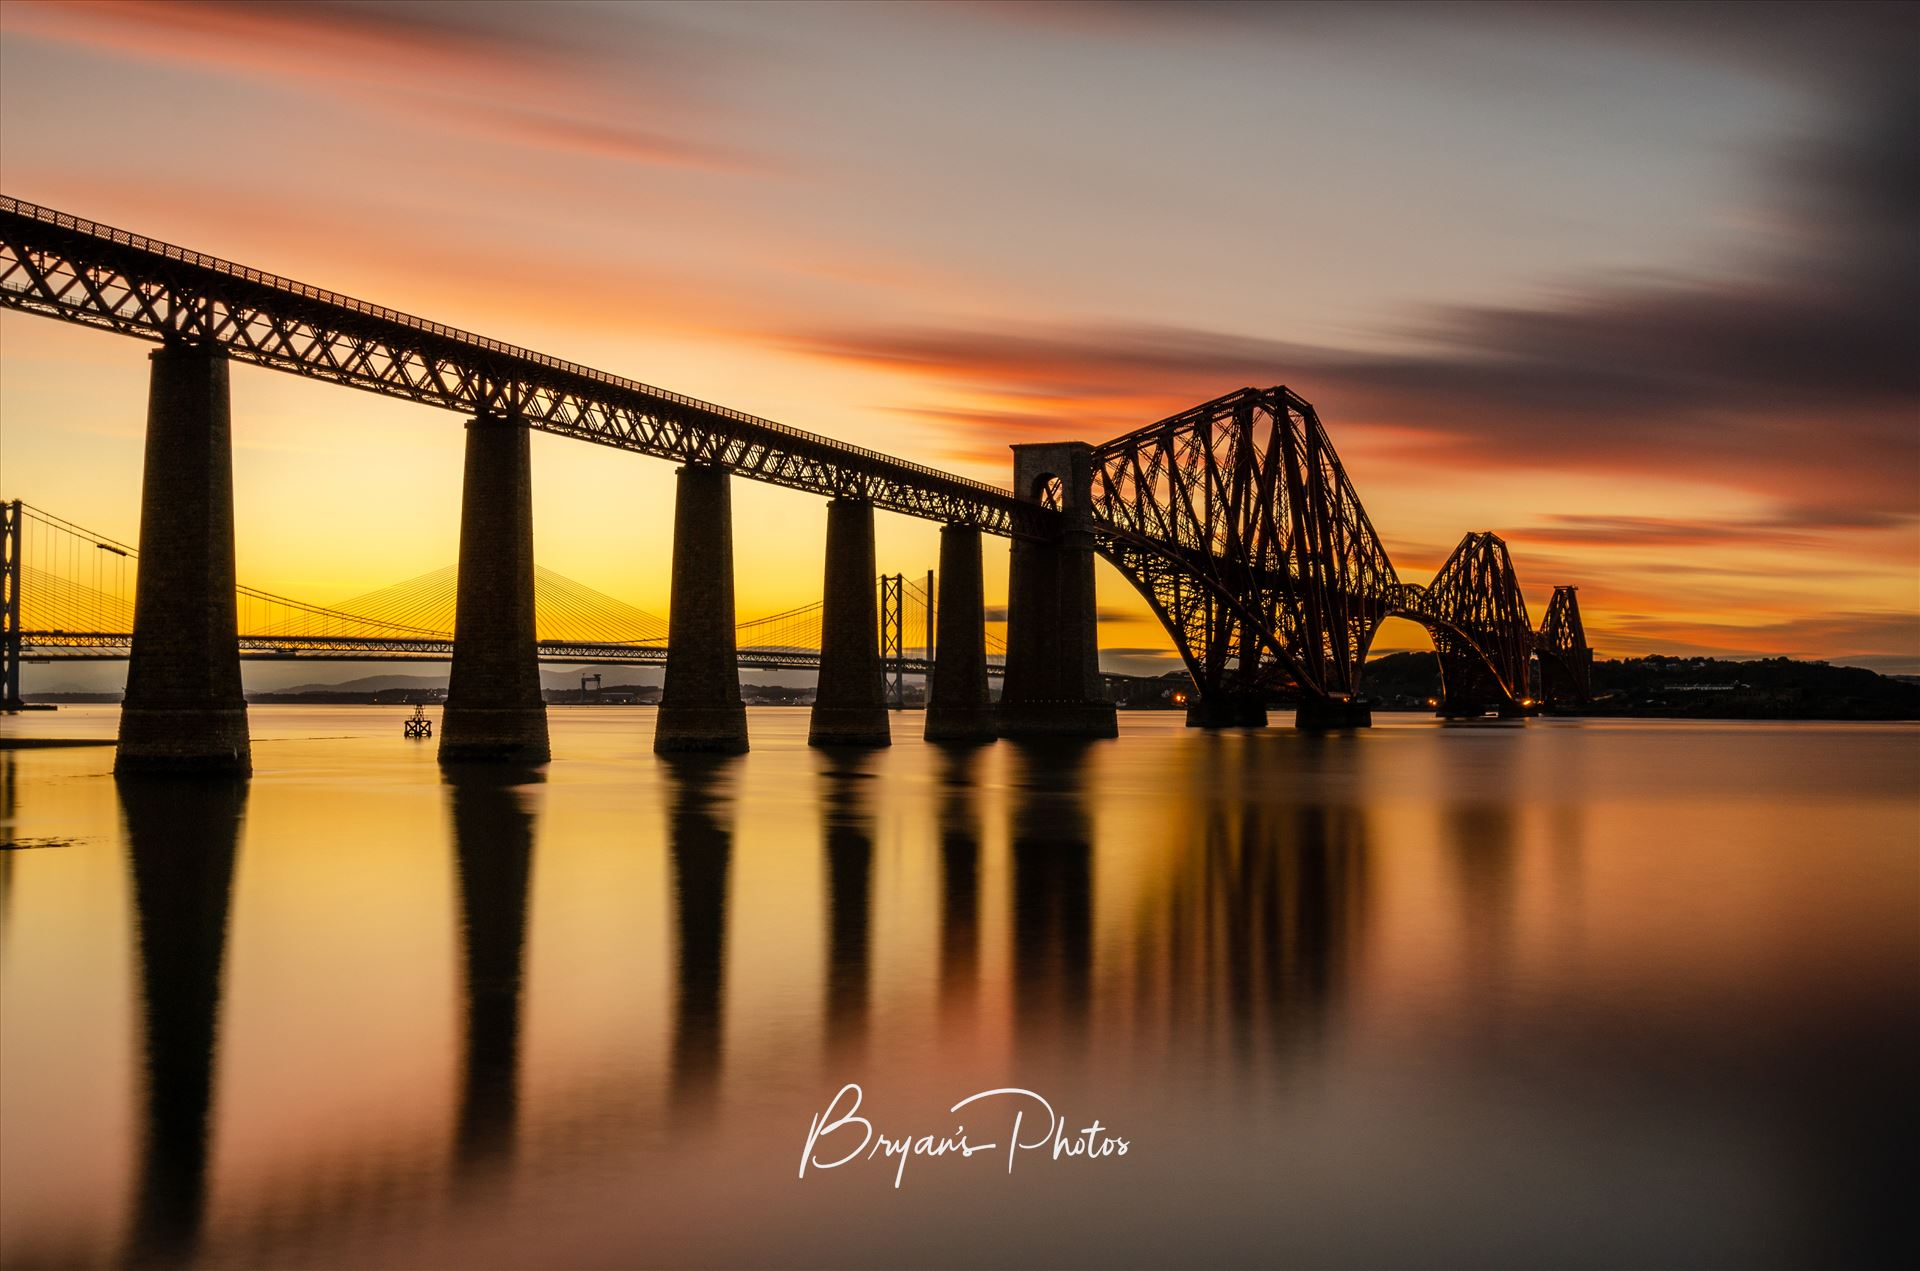 Rail Bridge Sunset A photograph of the Forth Rail Bridge taken at sunset from South Queensferry. by Bryans Photos